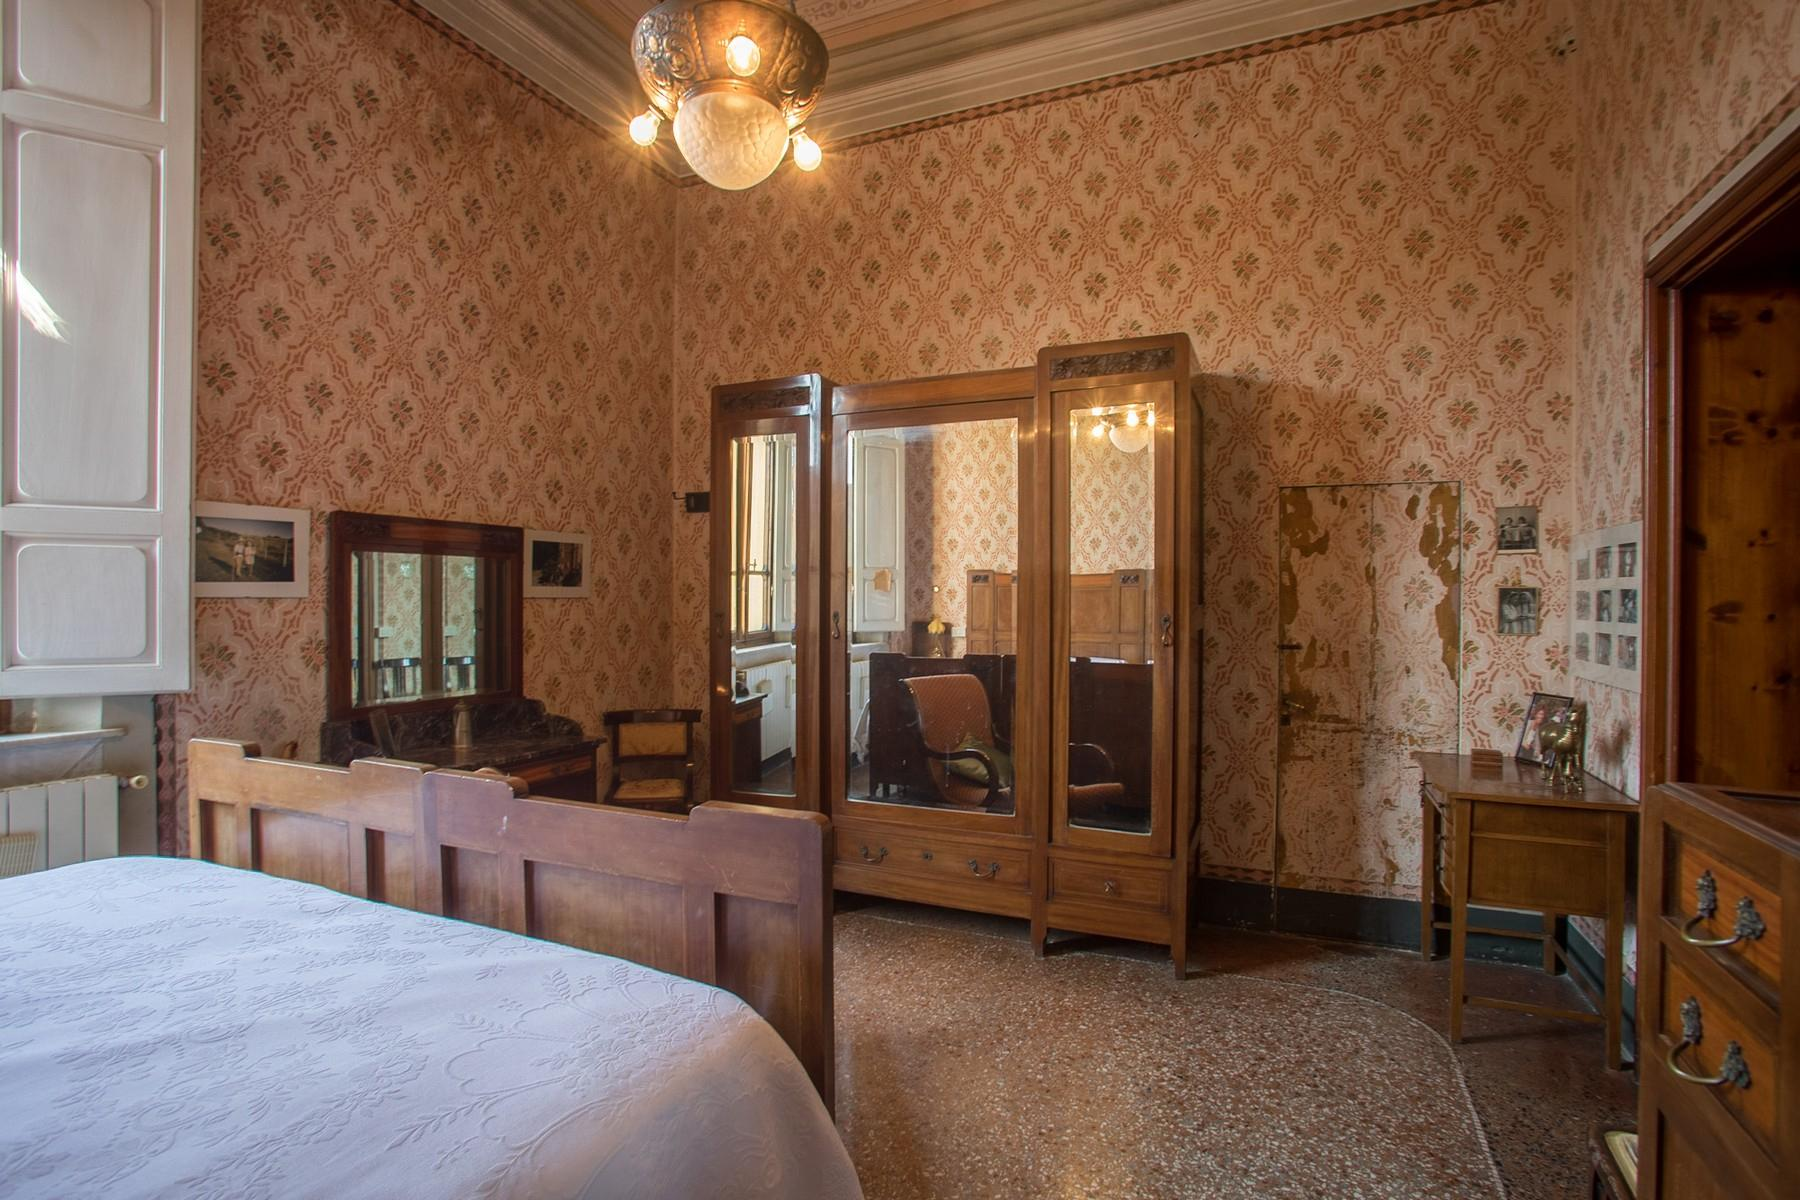 Elegant Historic Villa  in 23 Hectare Estate in the Province of Pisa. - 11